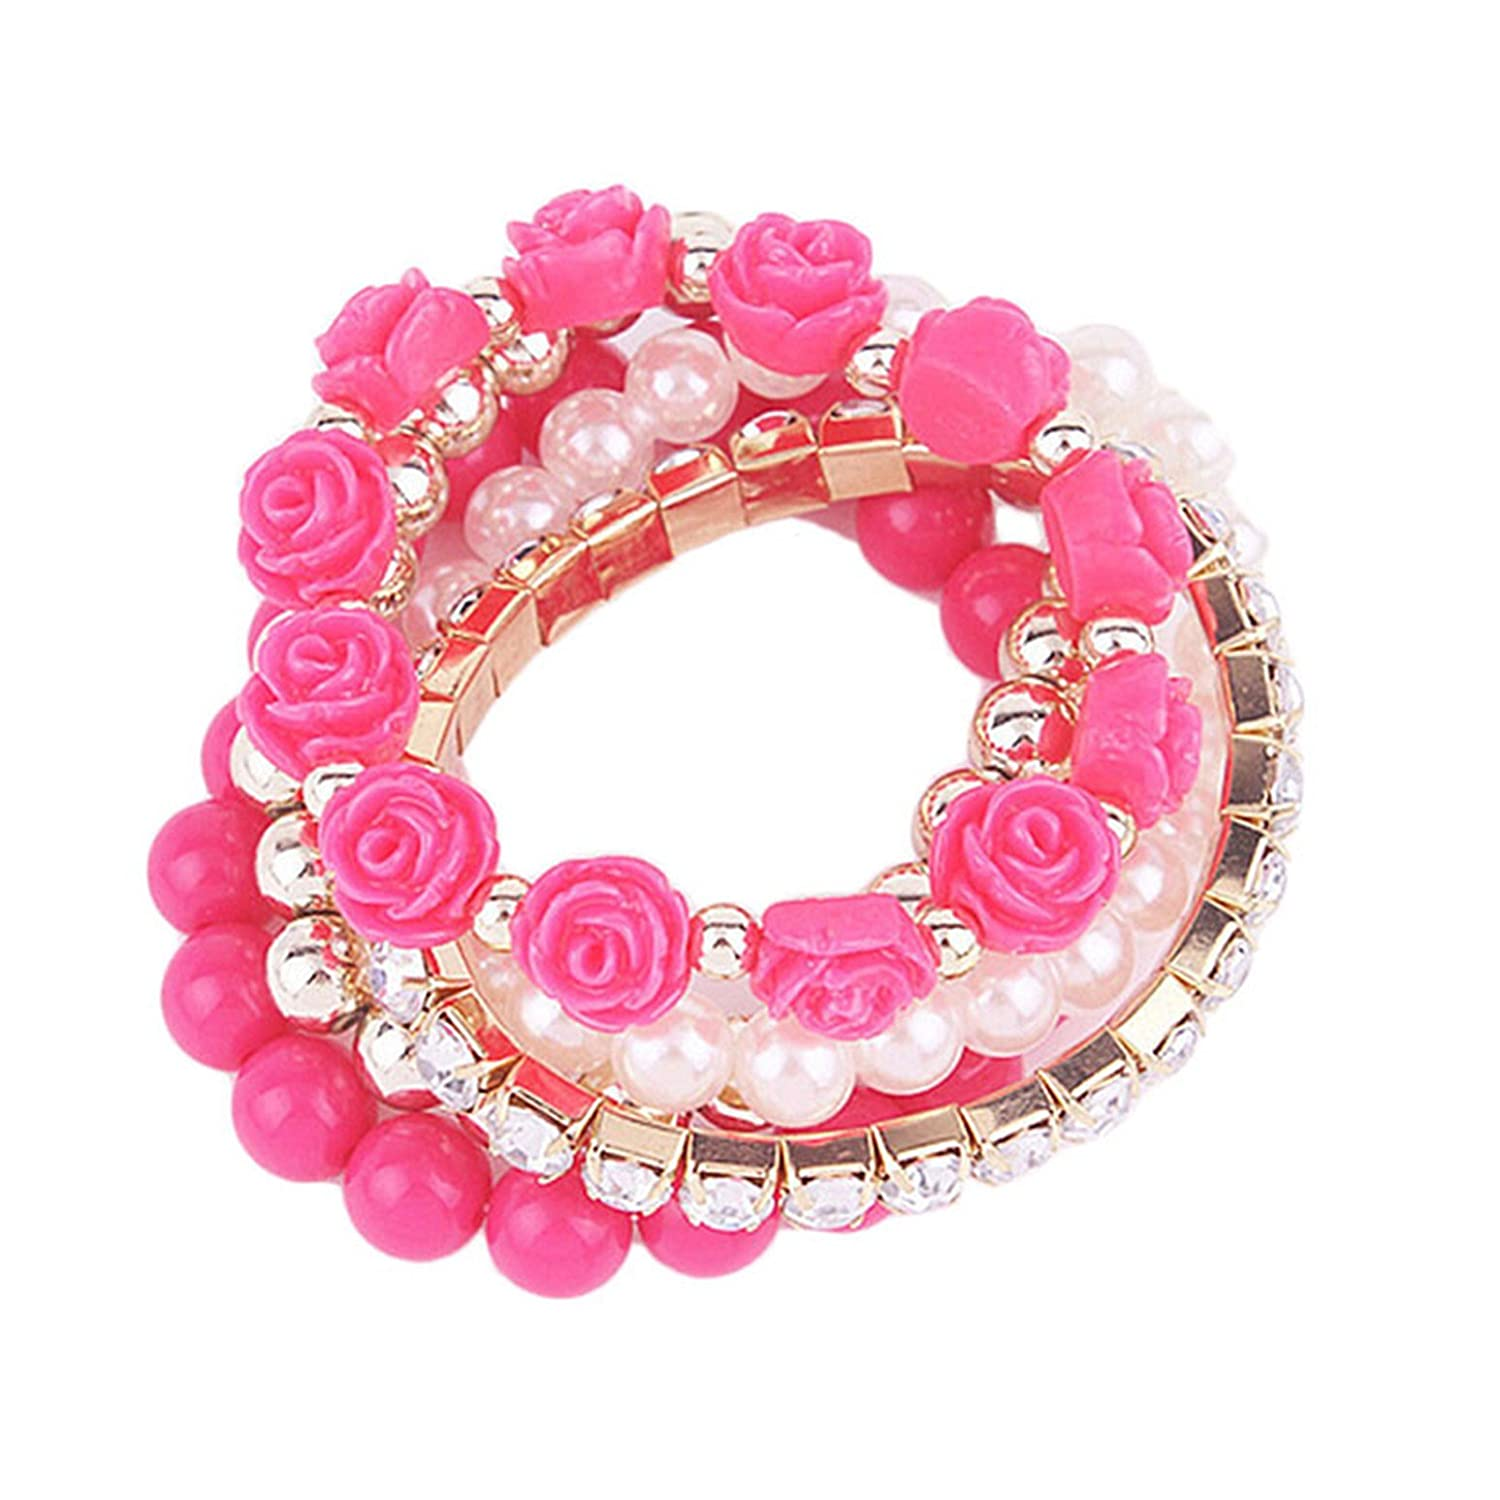 BSGSH Multilayer Roses Beaded Bracelet for Women Girls Jewelry Stackable Wristband Bohemian Style